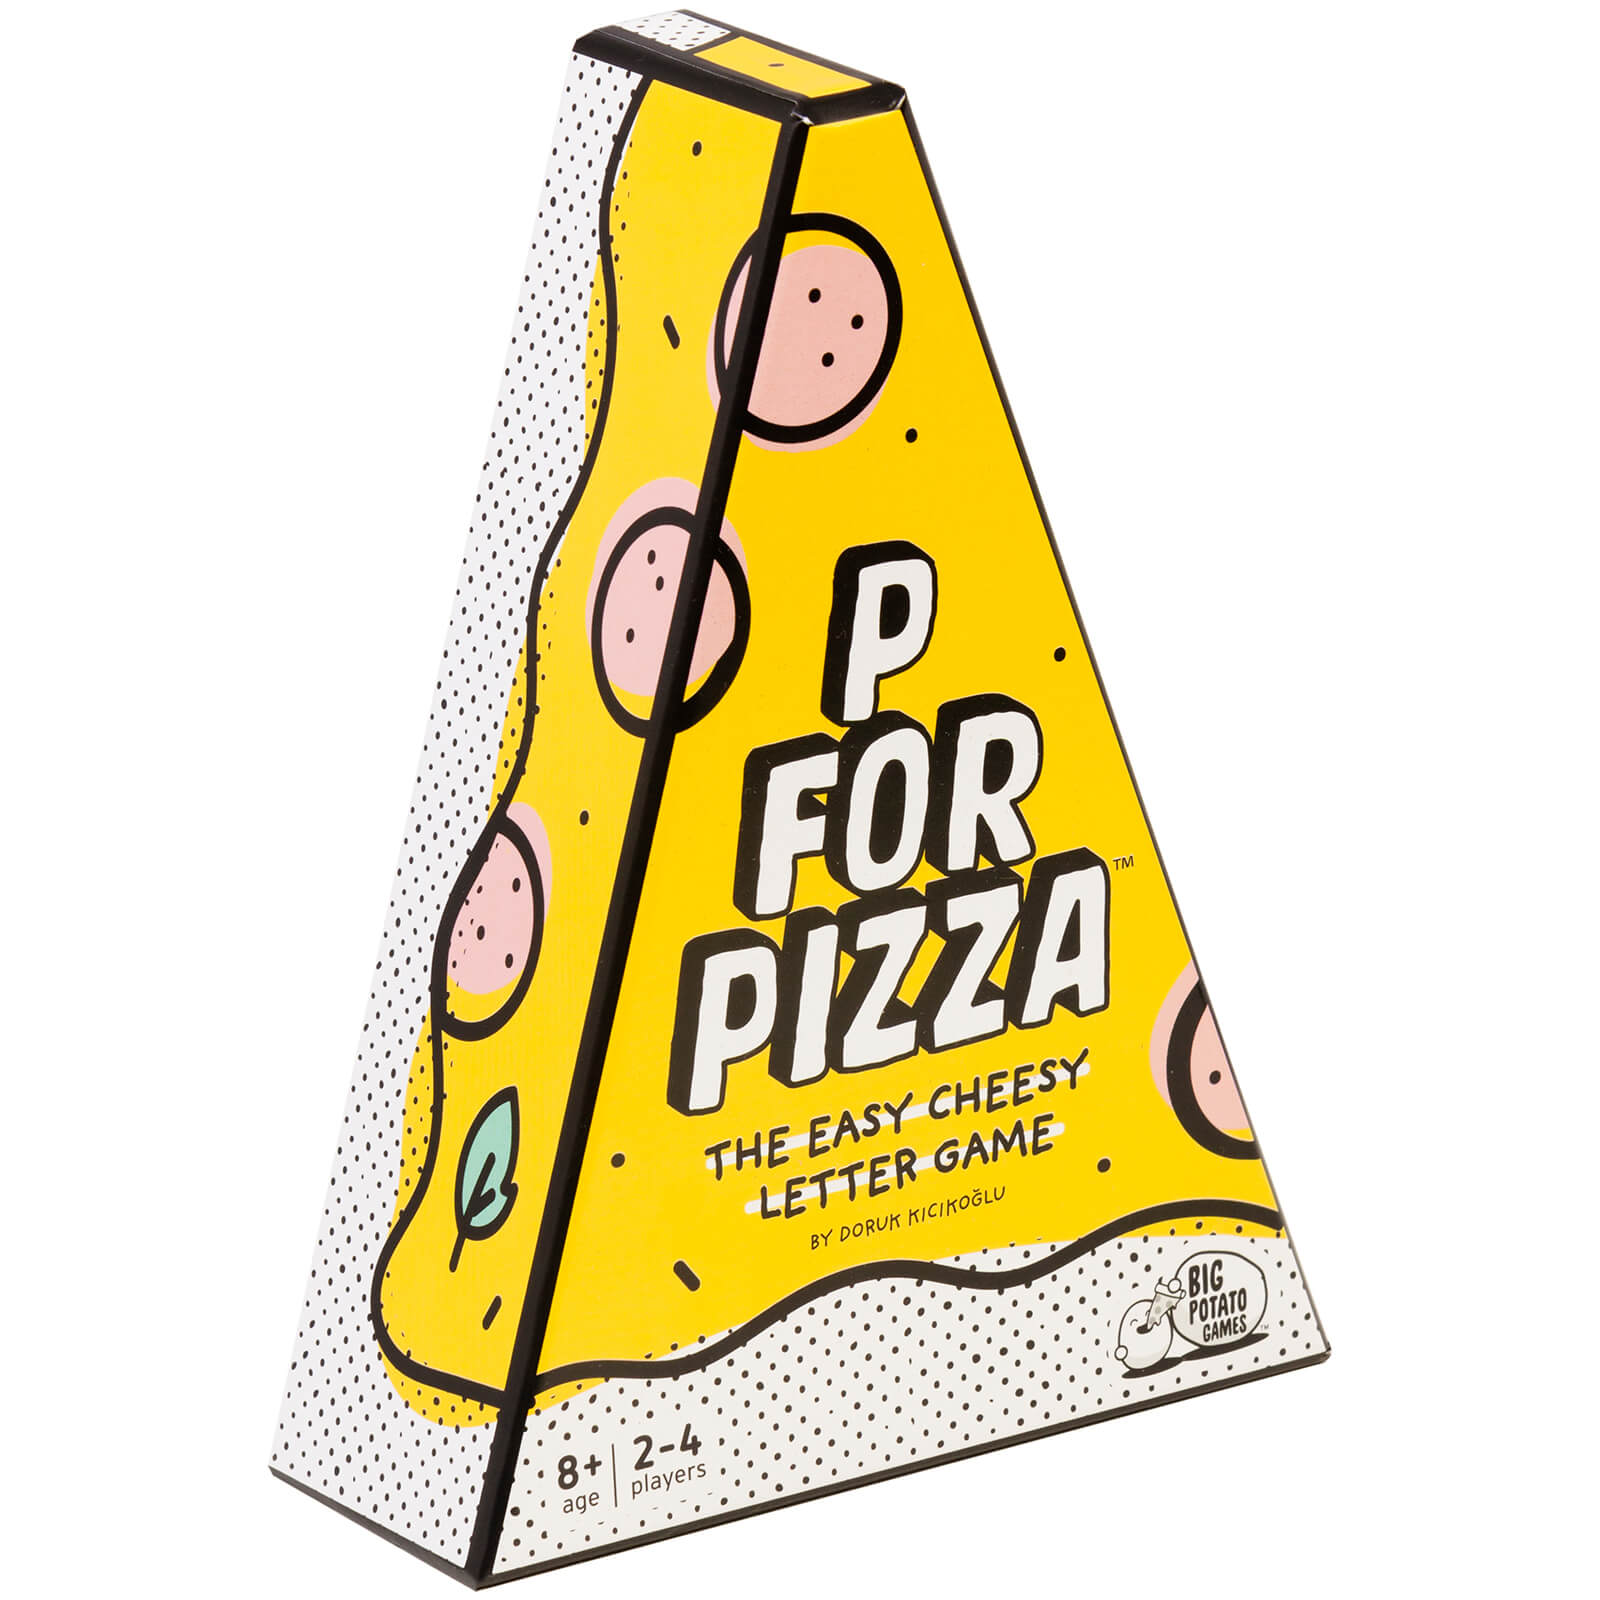 Image of P for Pizza - The Easy Cheesy Letter Game